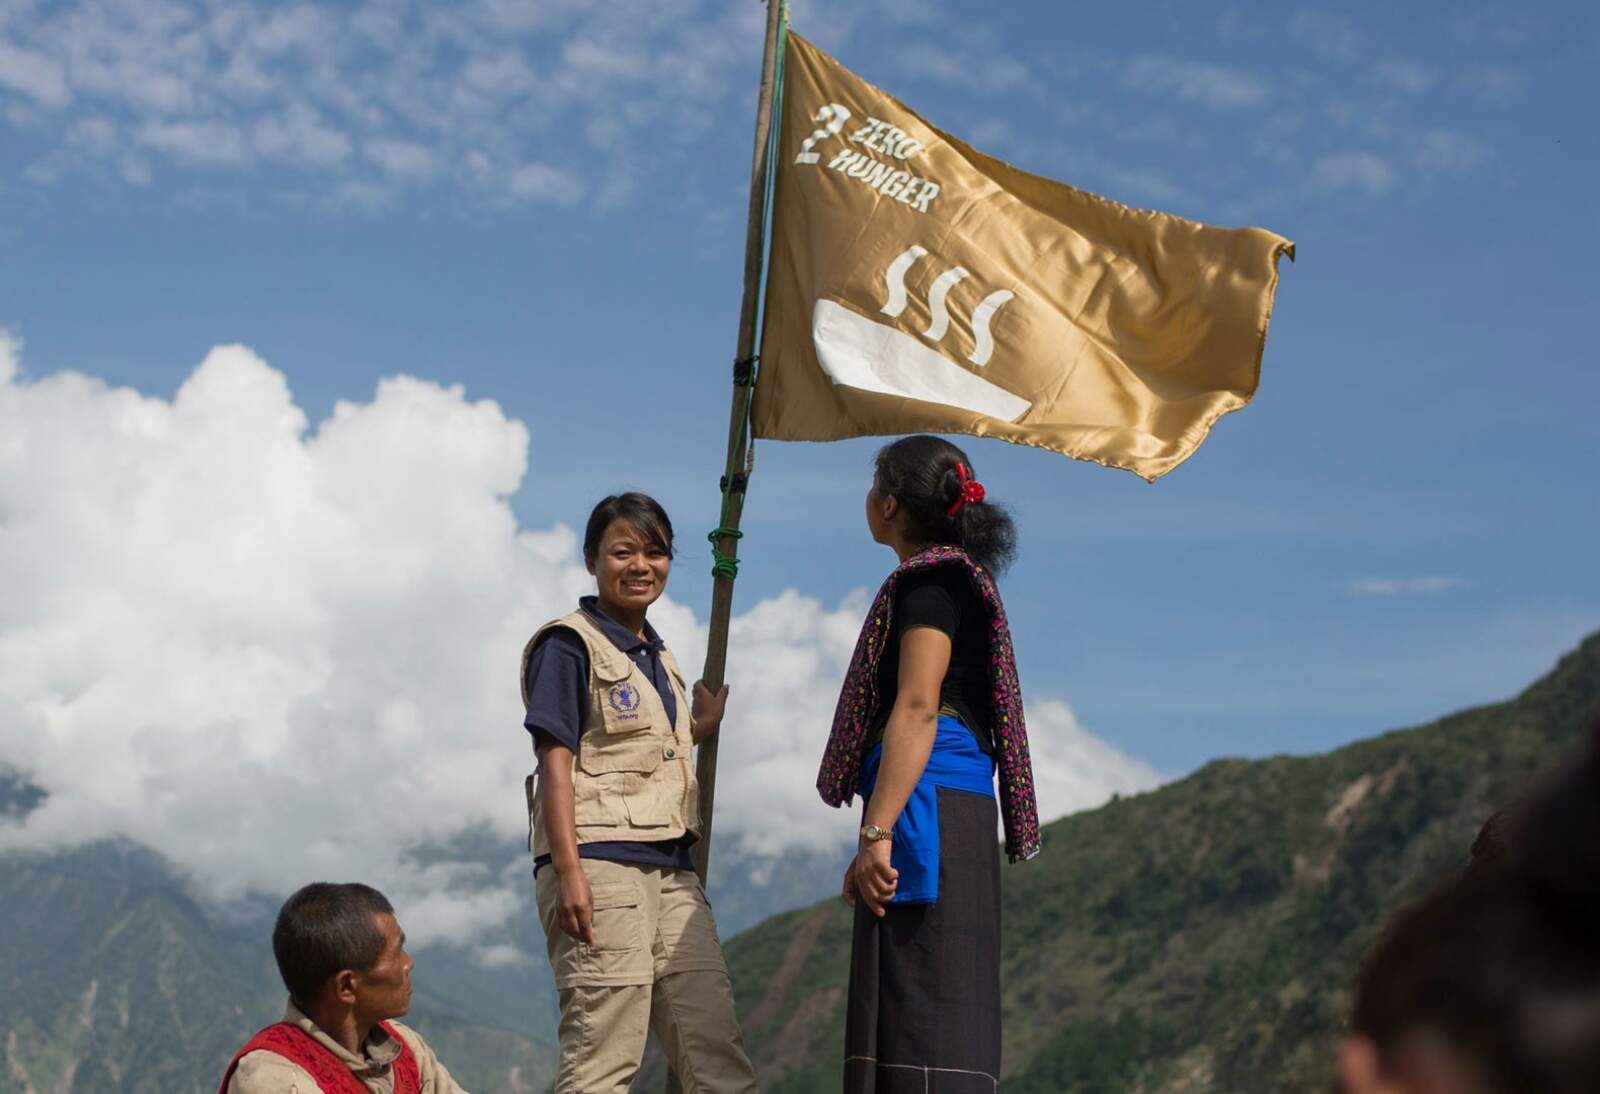 A photo of people holding a flag with one of the Global Goals icons.